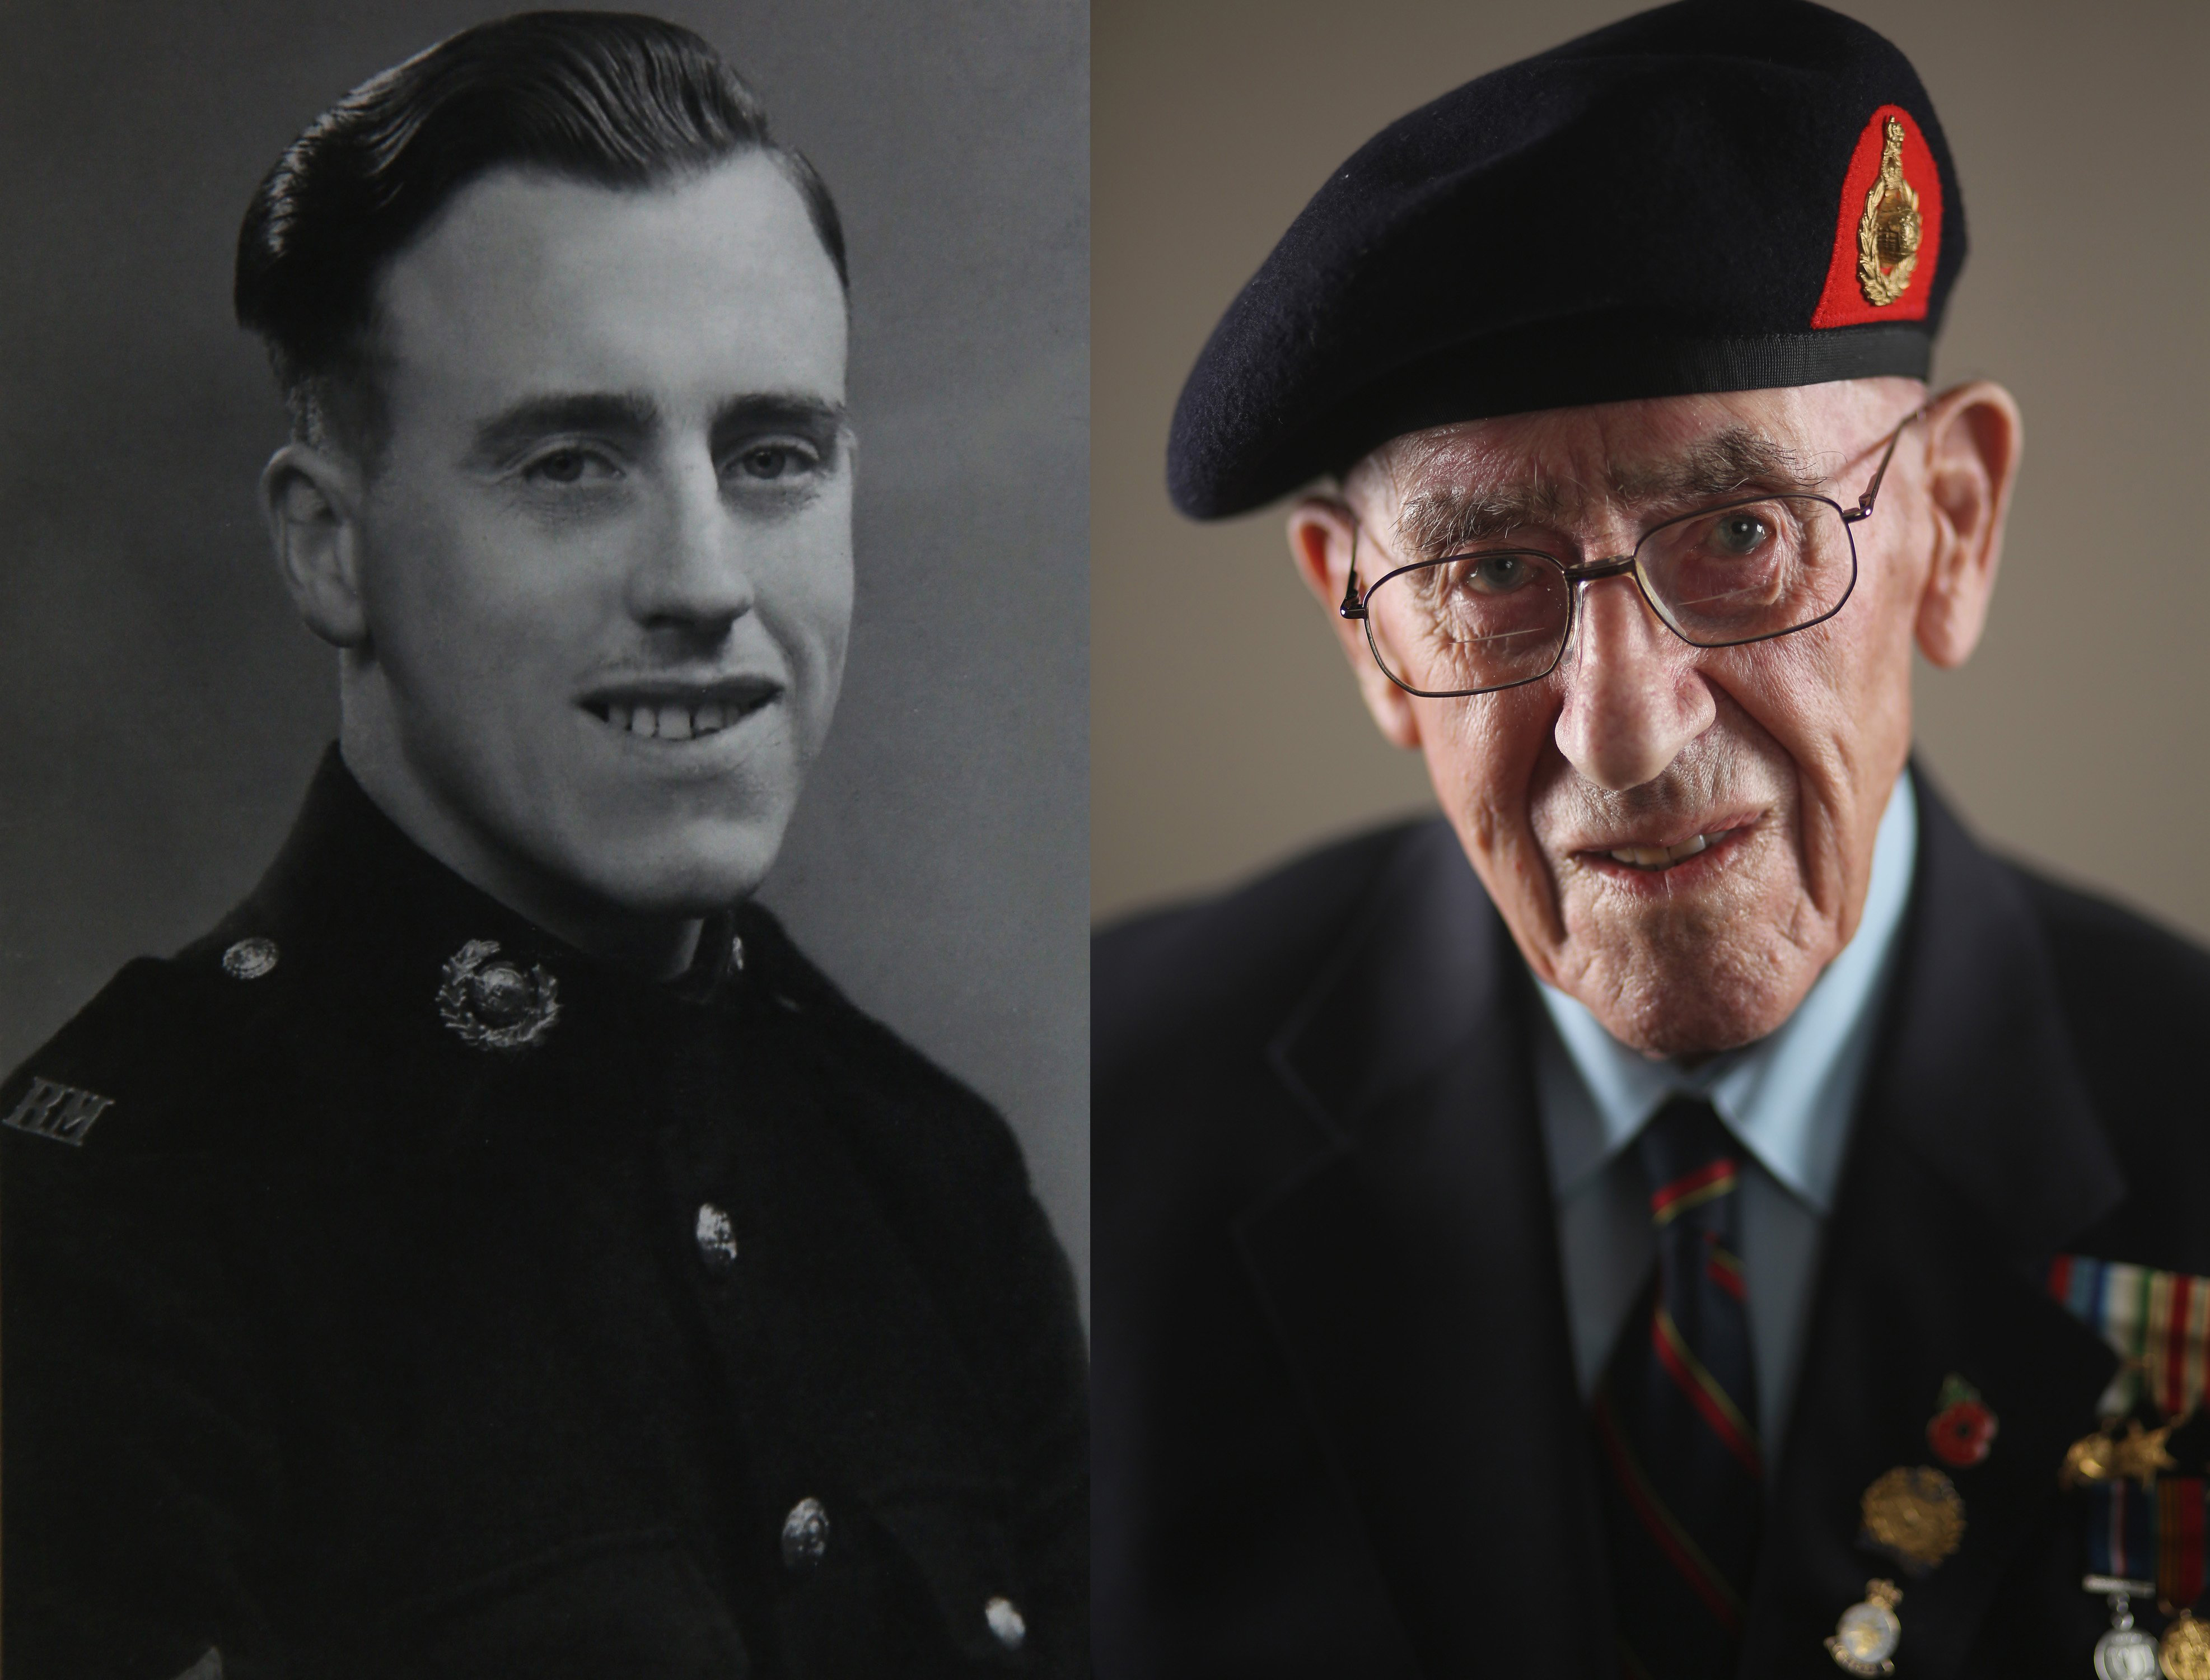 WWII veteran Harold Robinson as a young Royal Marine and at his home, age 95, wearing his campaign medals and Royal Marine beret on Aug. 4, 2015 in Otley, England.